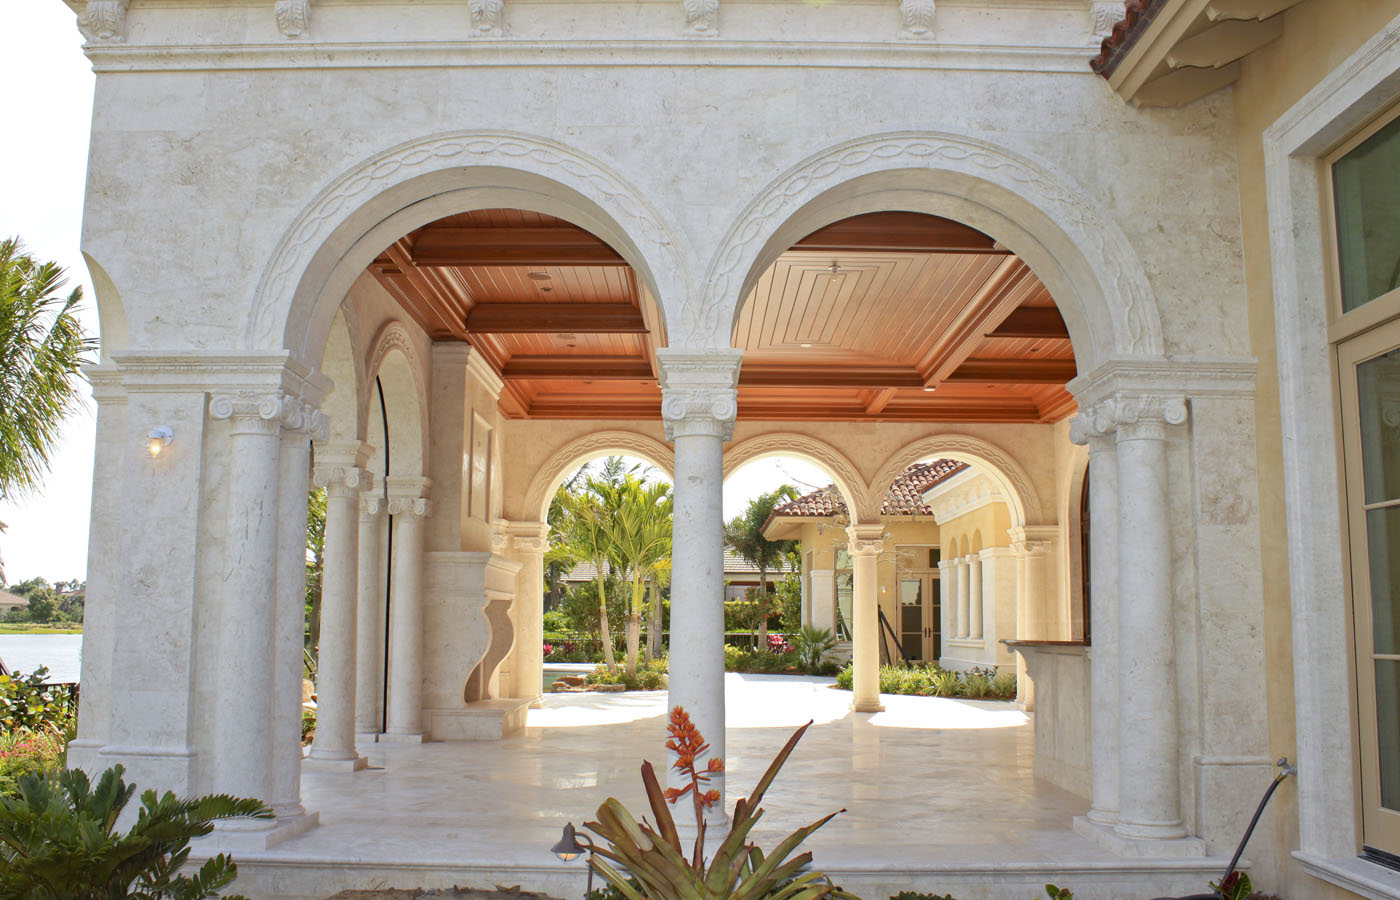 Afamia stone - Fine Limestone Architectural Elements Inc